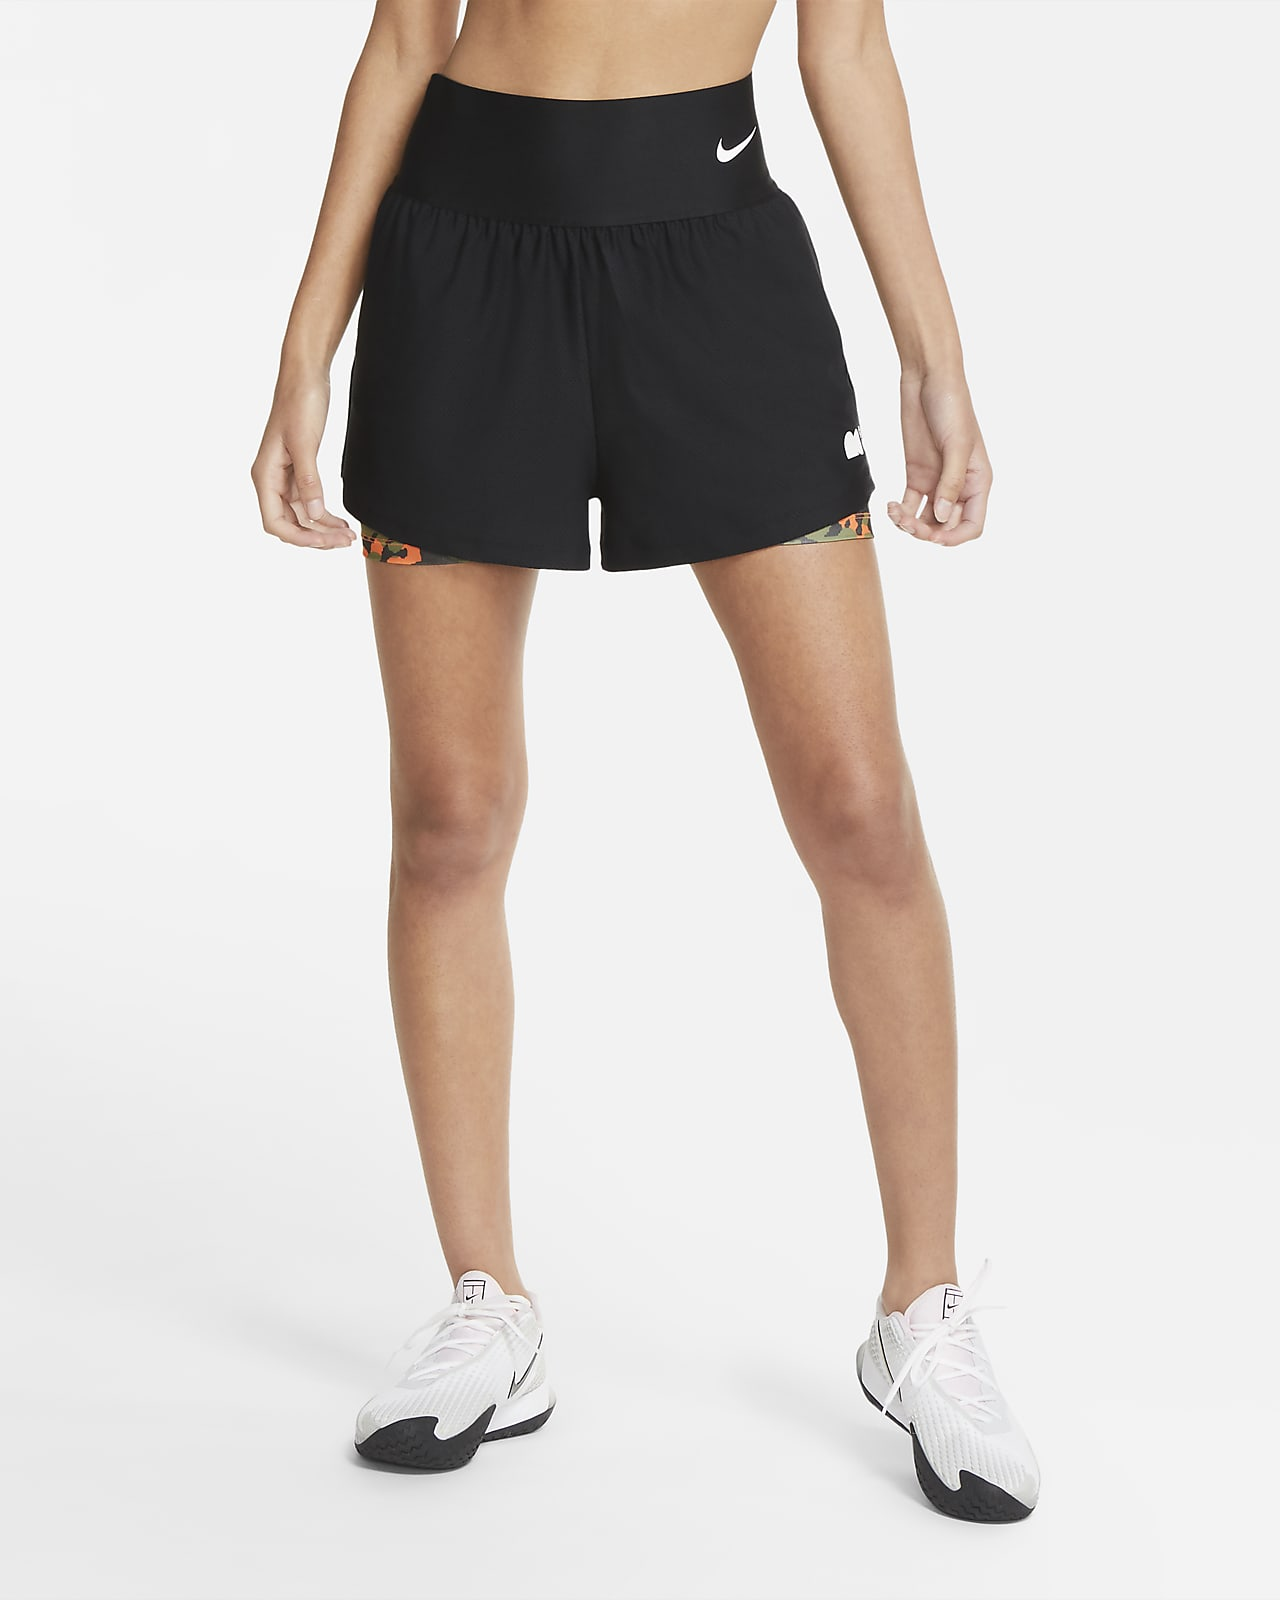 NikeCourt Dri-FIT Naomi Osaka Tennis Shorts